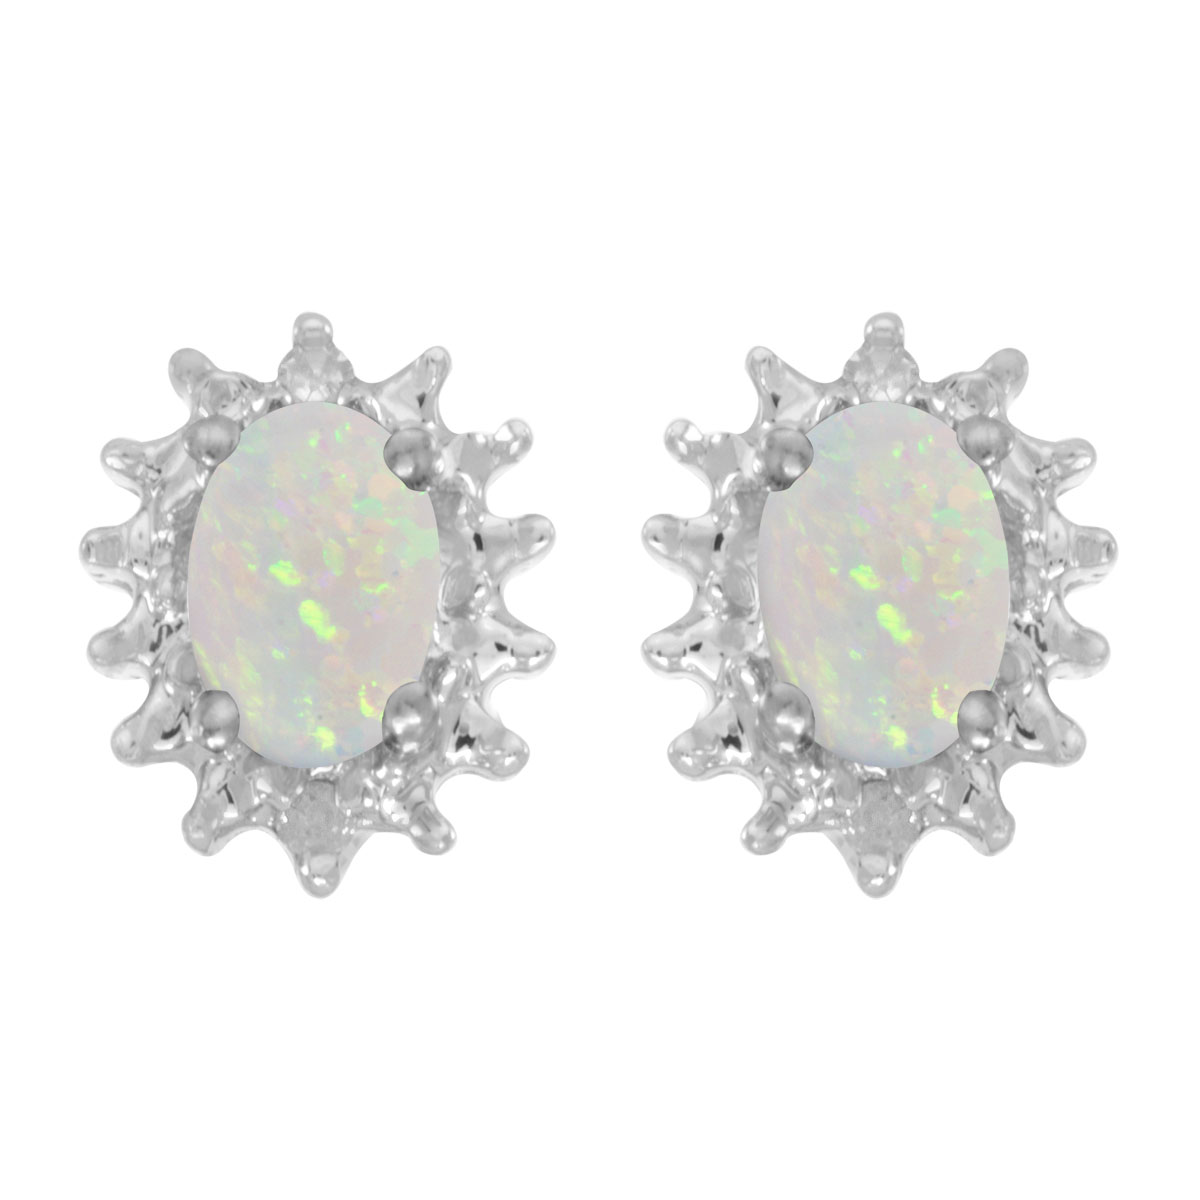 These 14k white gold oval opal and diamond earrings feature 6x4 mm genuine natural opals with a 0...